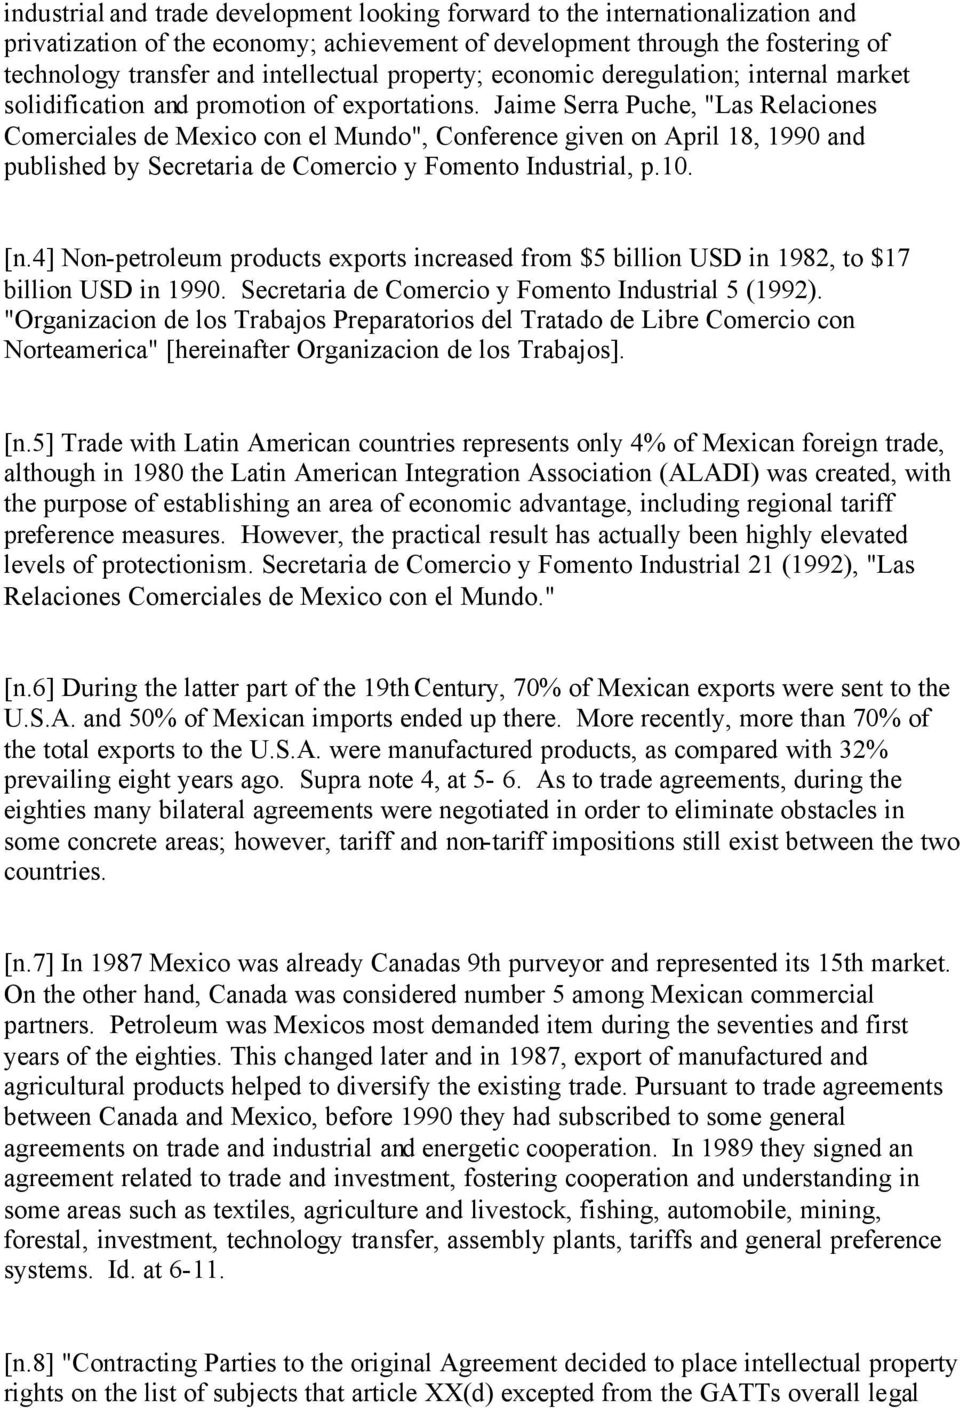 "Jaime Serra Puche, ""Las Relaciones Comerciales de Mexico con el Mundo"", Conference given on April 18, 1990 and published by Secretaria de Comercio y Fomento Industrial, p.10. [n."